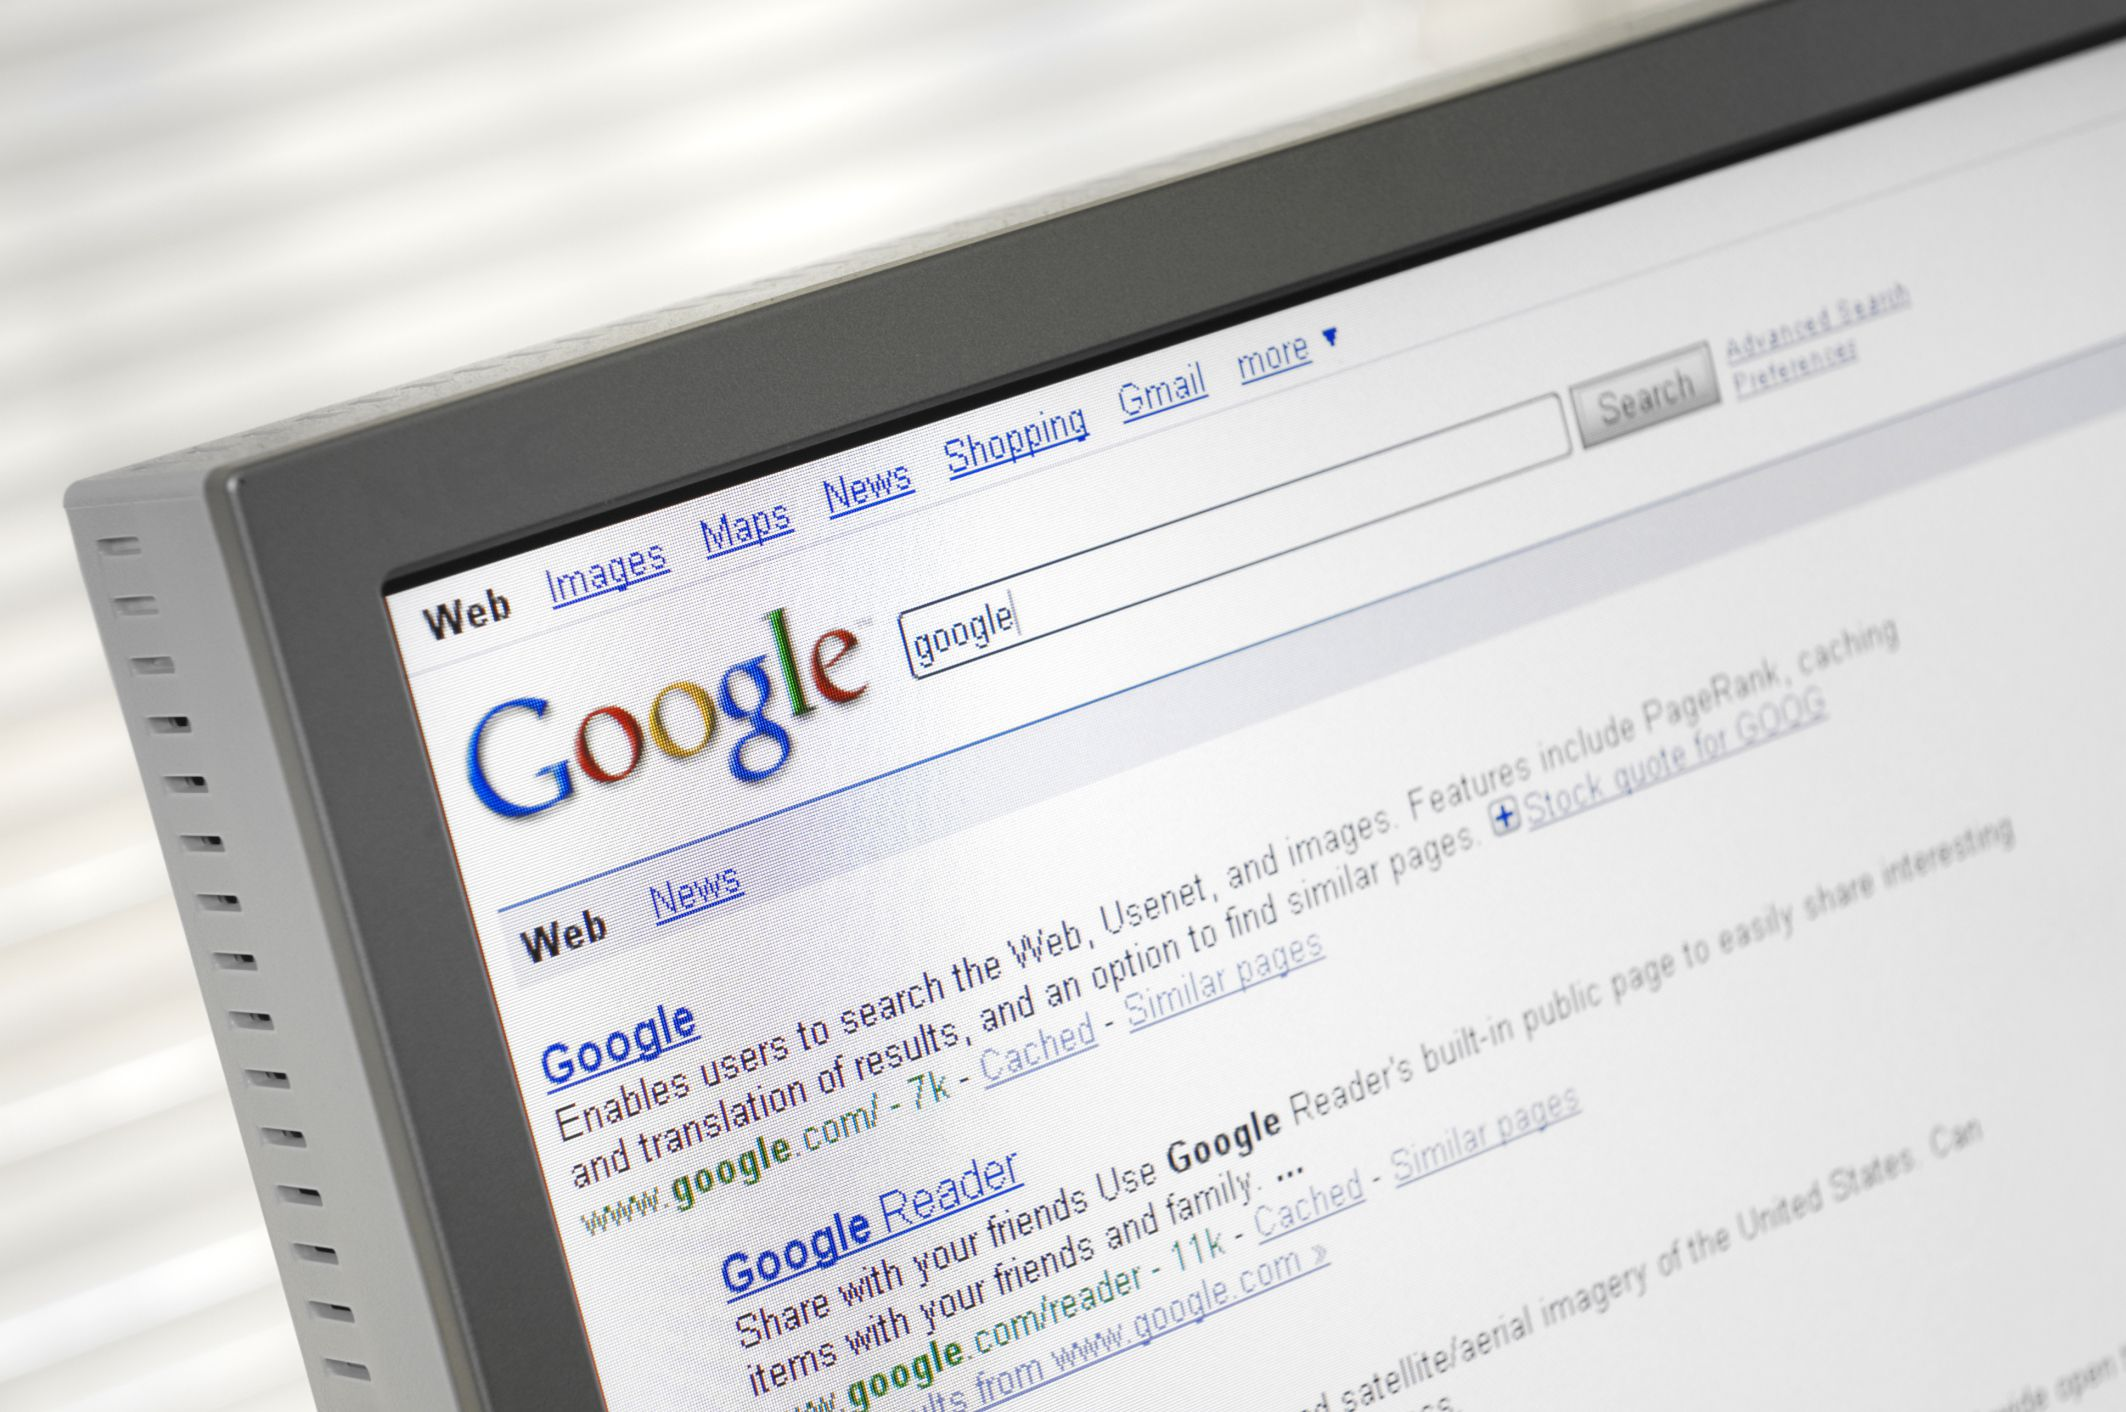 How To Use Google To Find Files Online